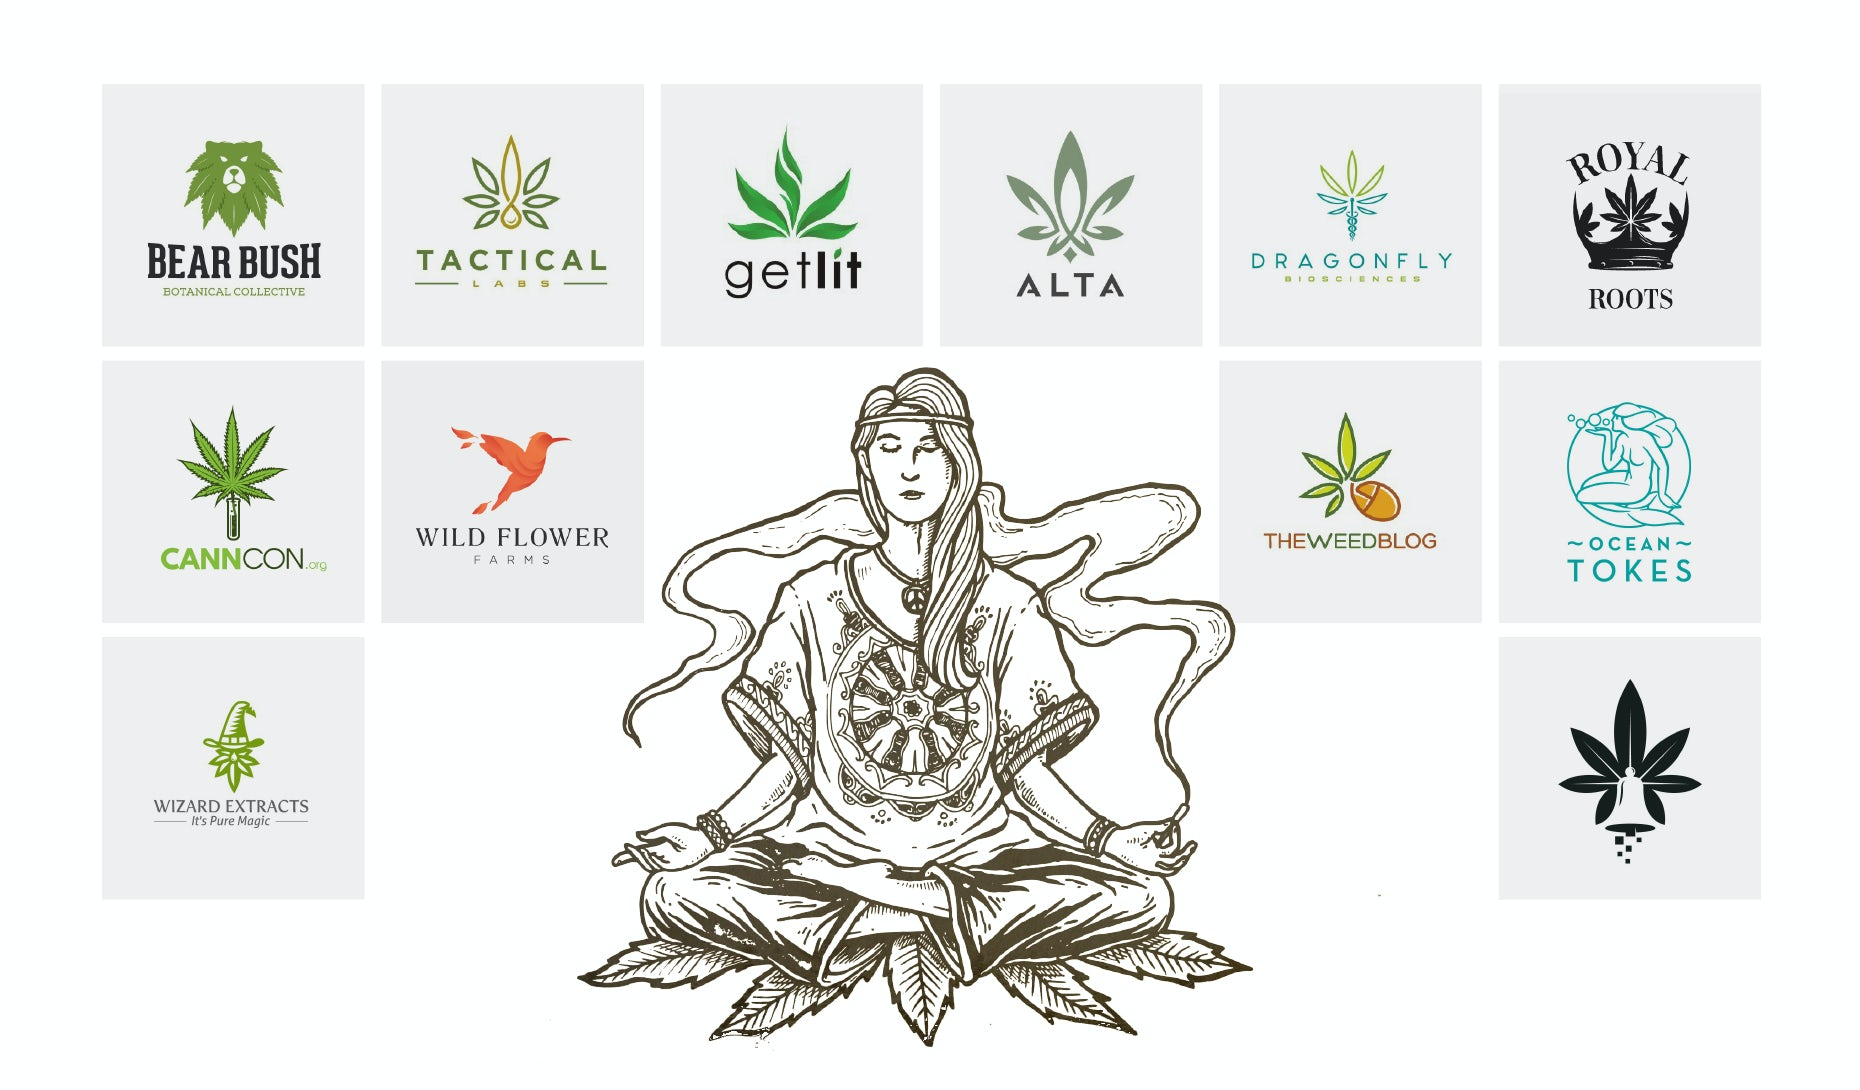 Should I design for companies in the cannabis industry? - 99designs